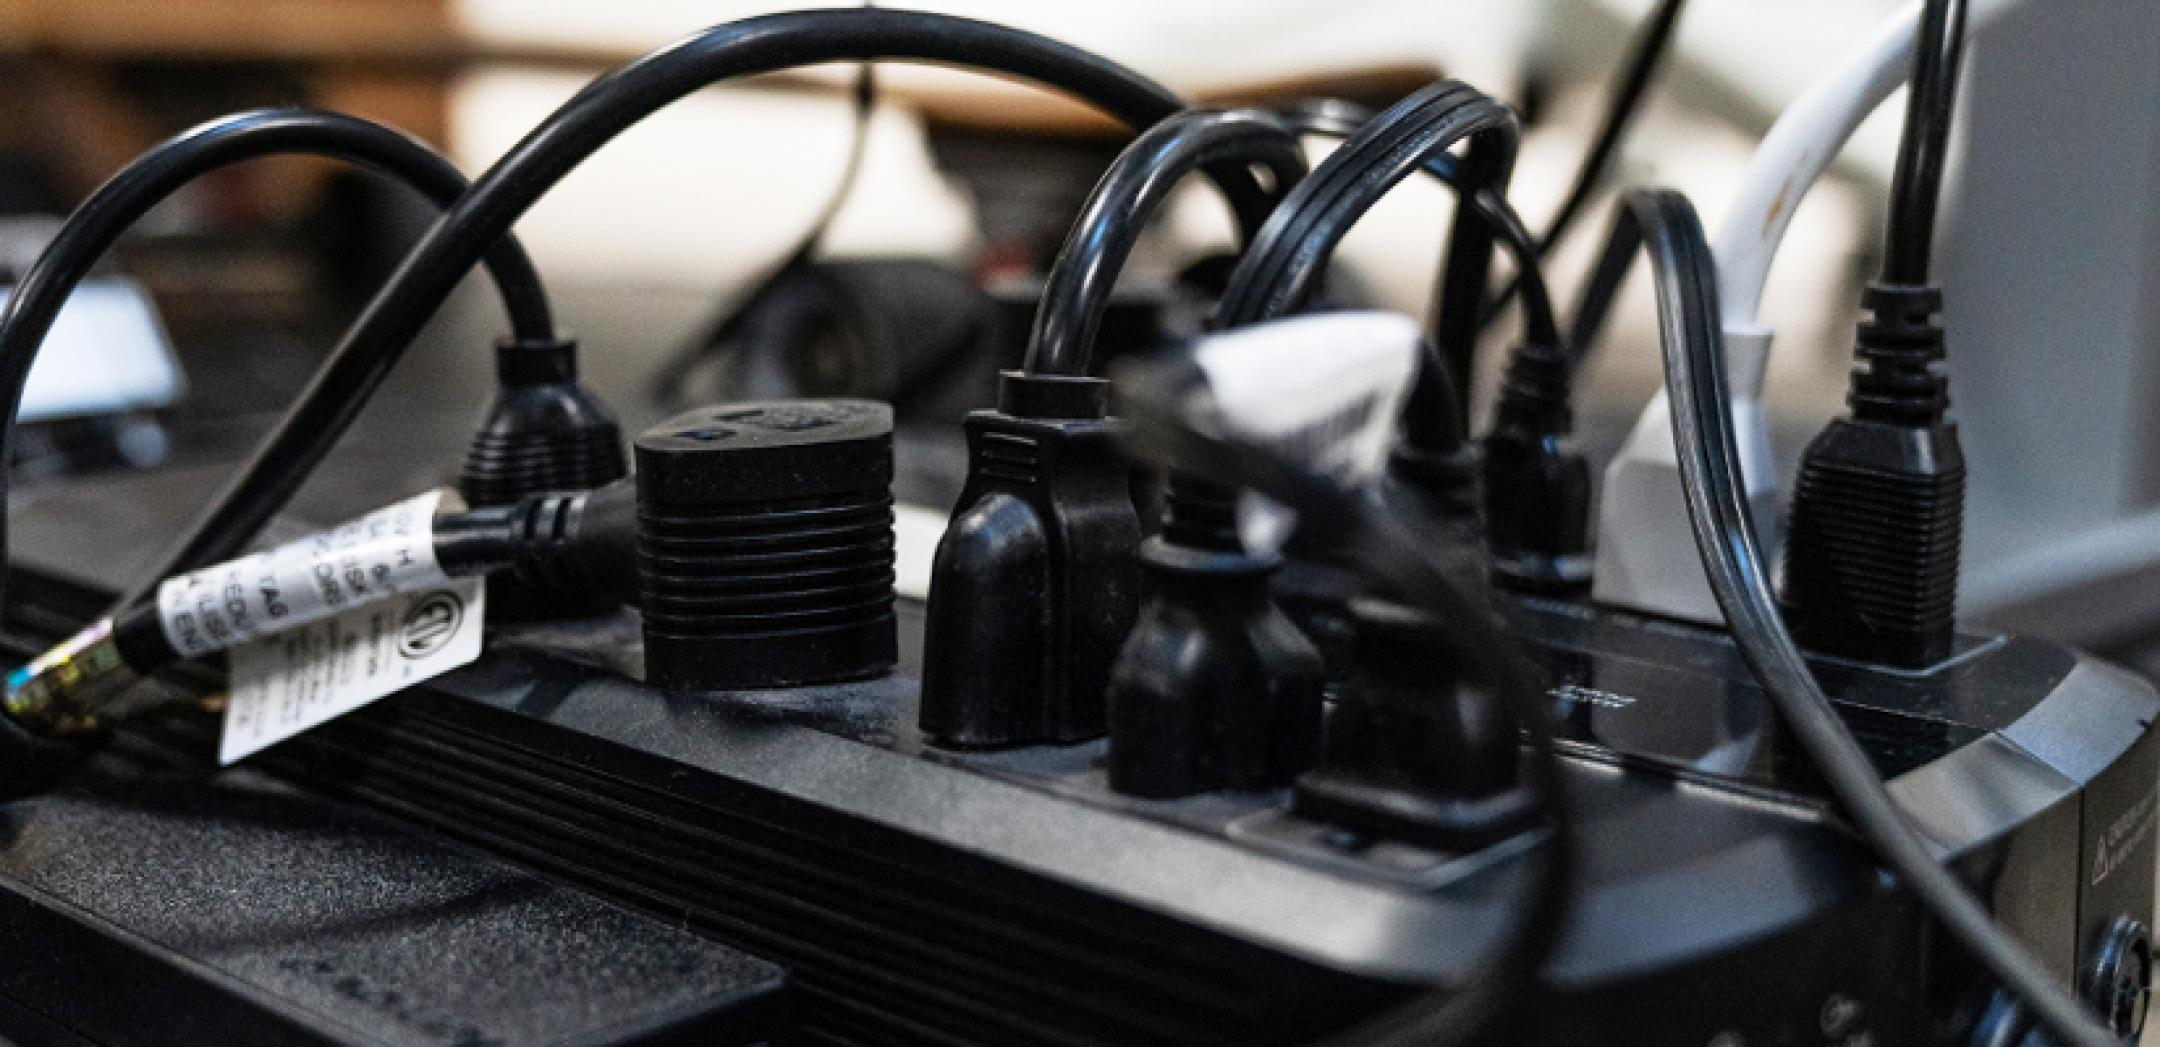 The Best Surge Protectors to Protect Your Electronics